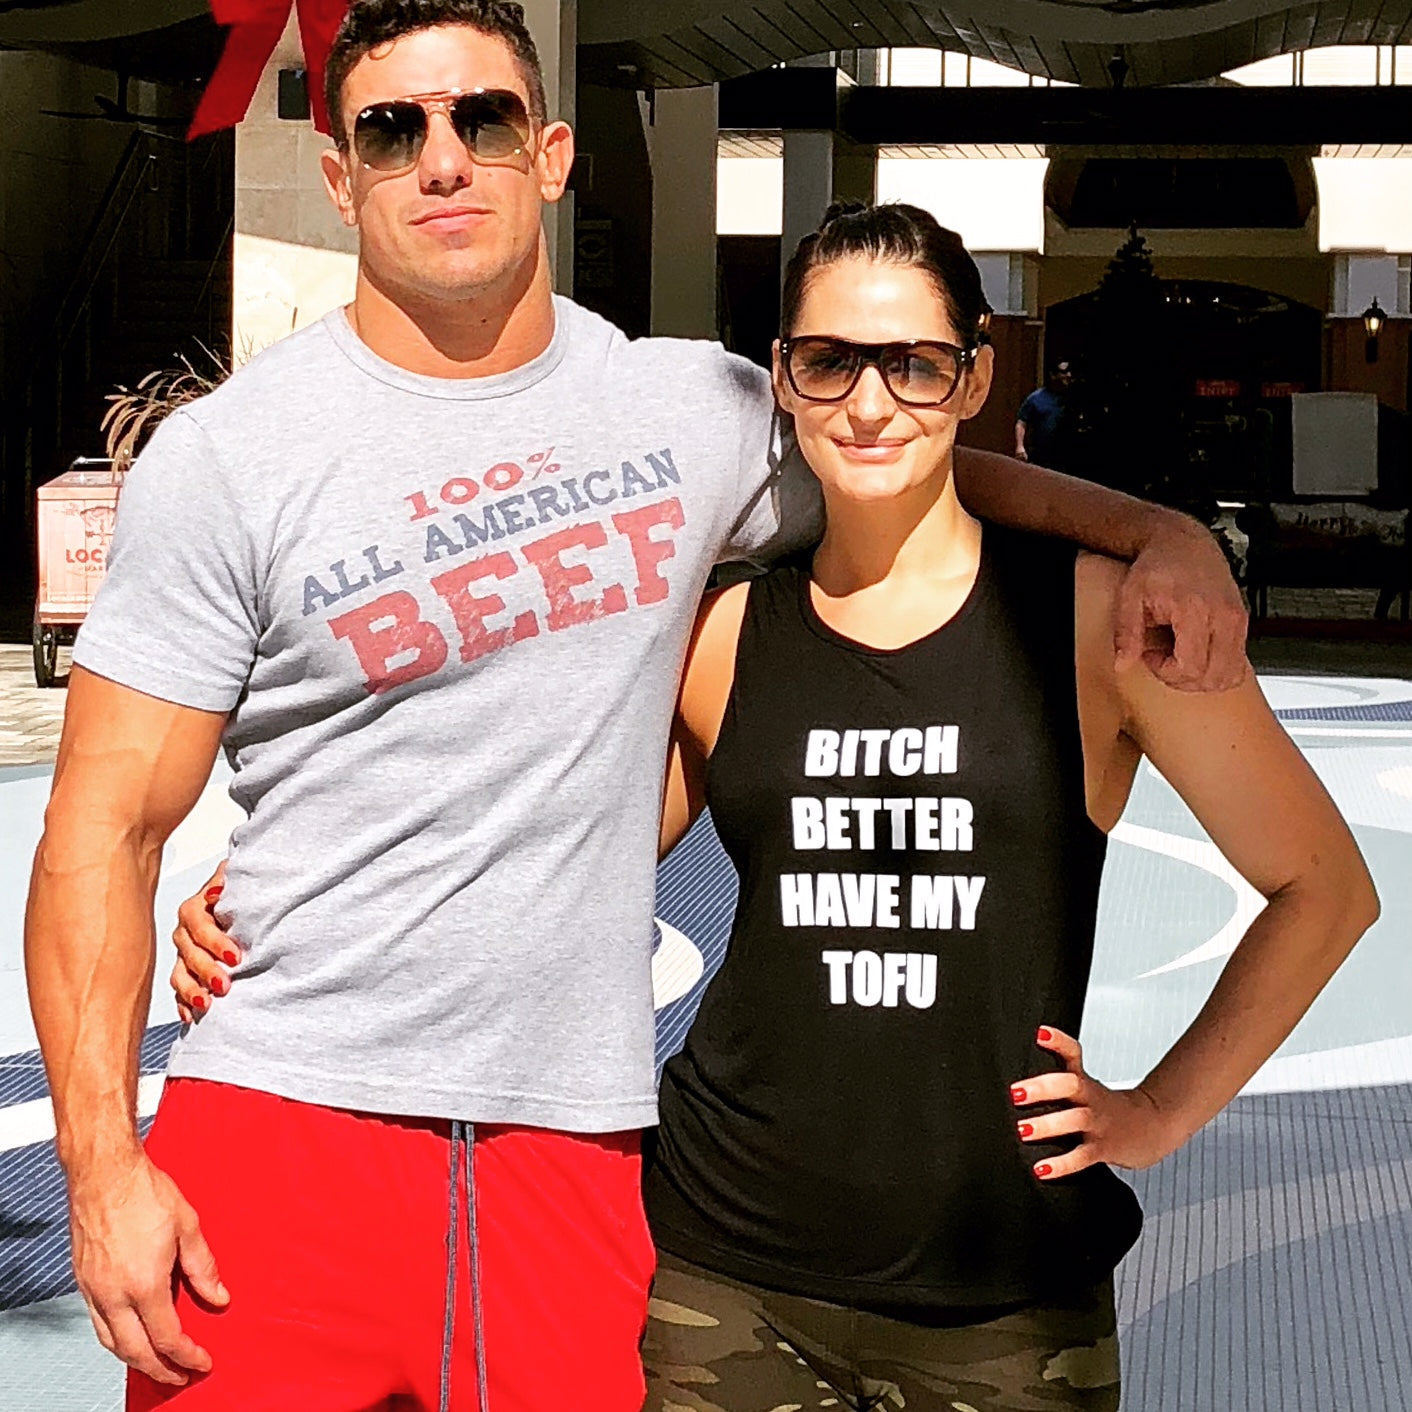 Michael-Hutter-Pro-Wrestler-EC3-and-Samantha-Shorkey-Vegan-Coach.jpg